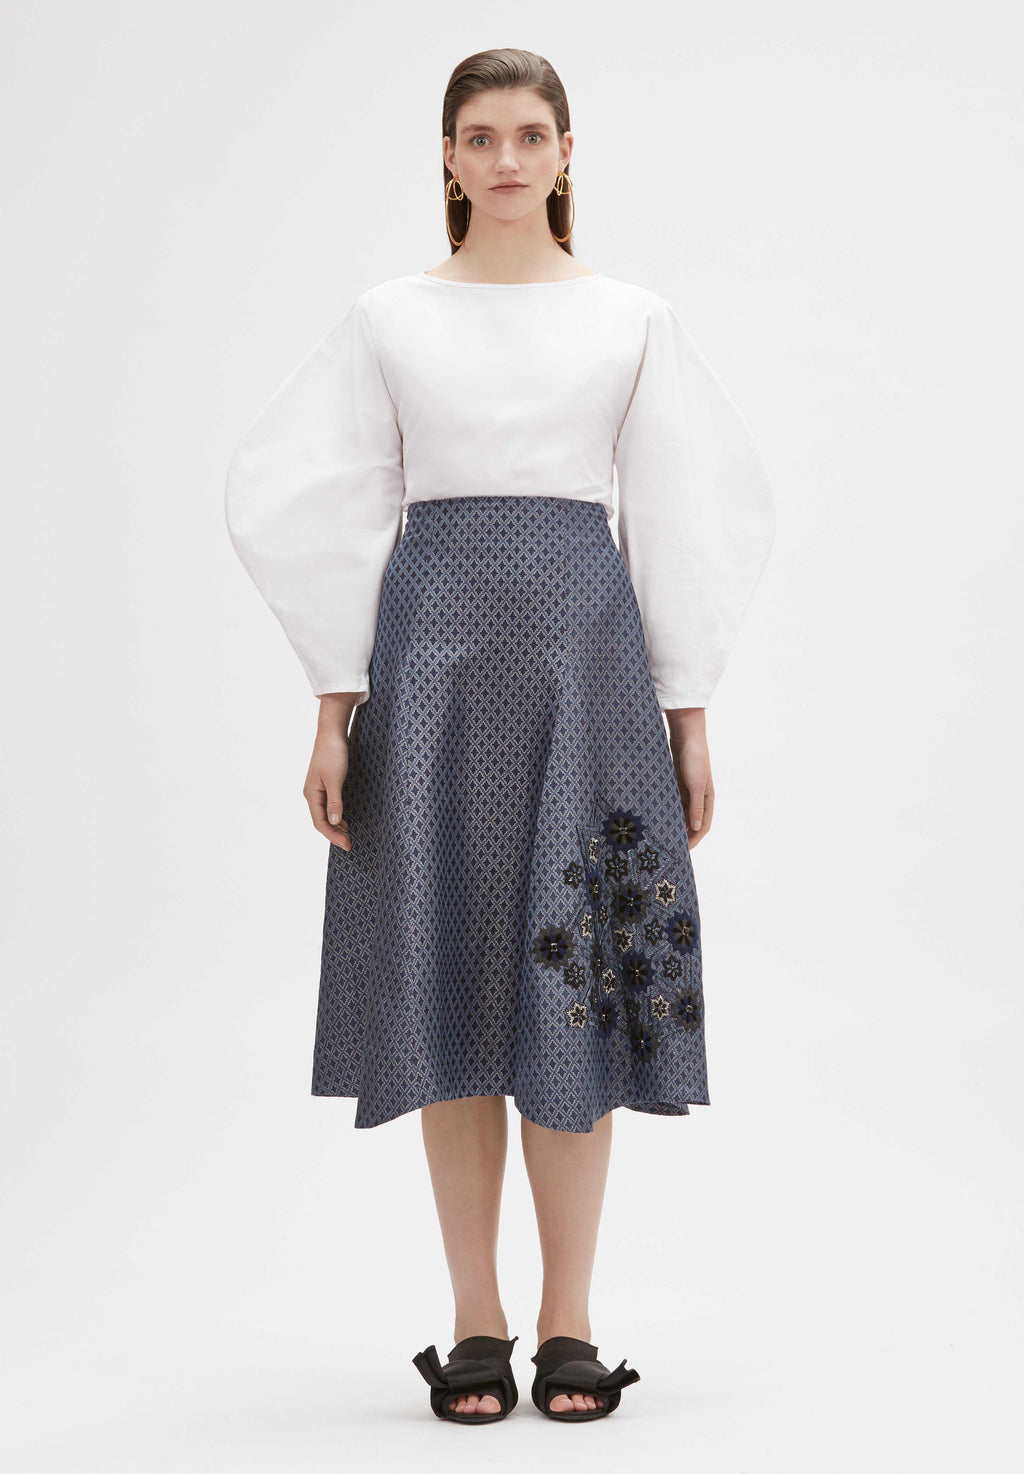 Fatin Hand-Embroidered Skirt